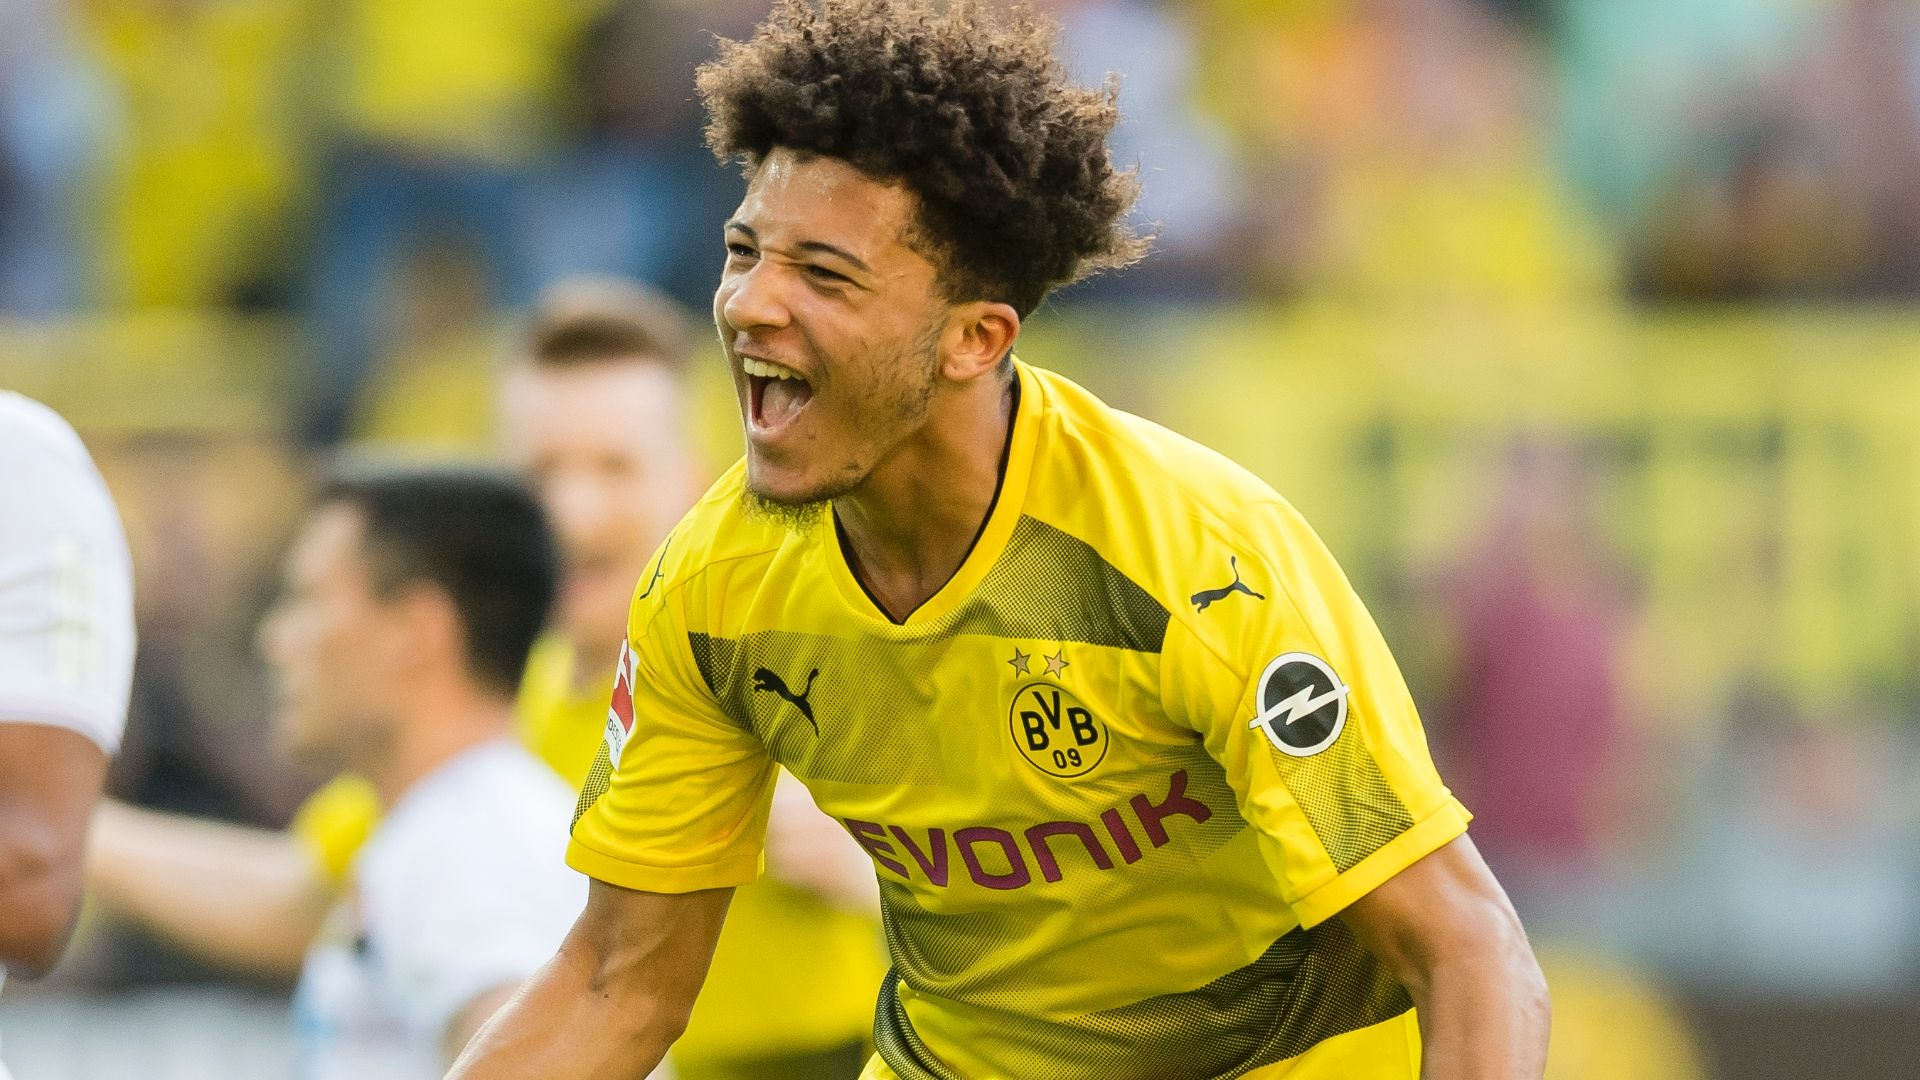 Sancho is better than me at 18 - Reus